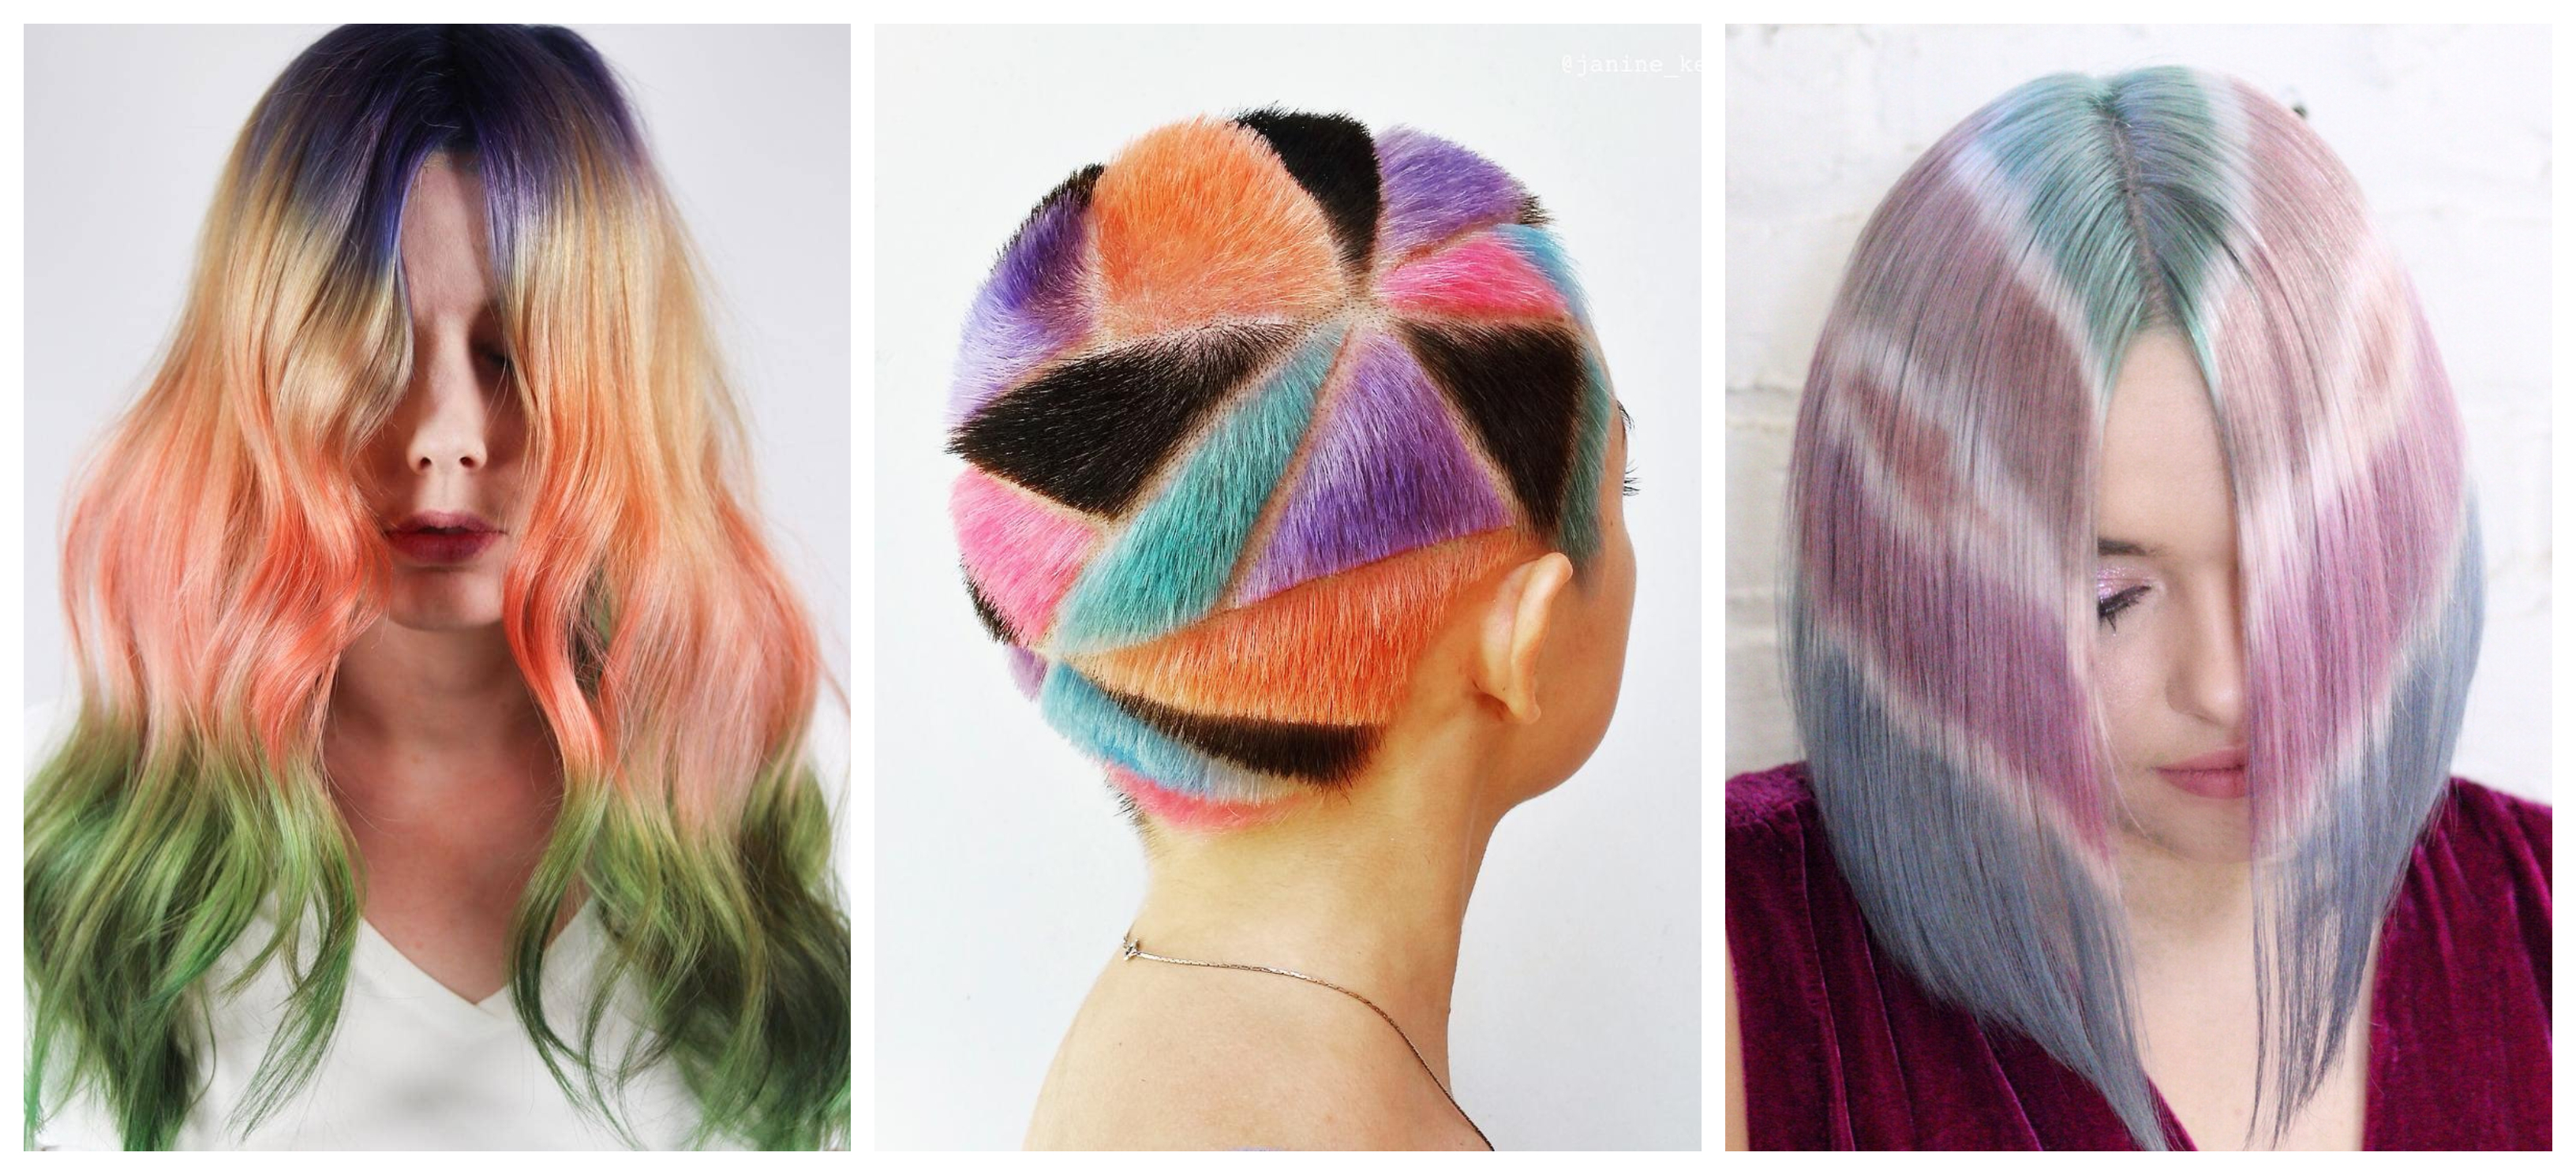 Experiments With Color Trend